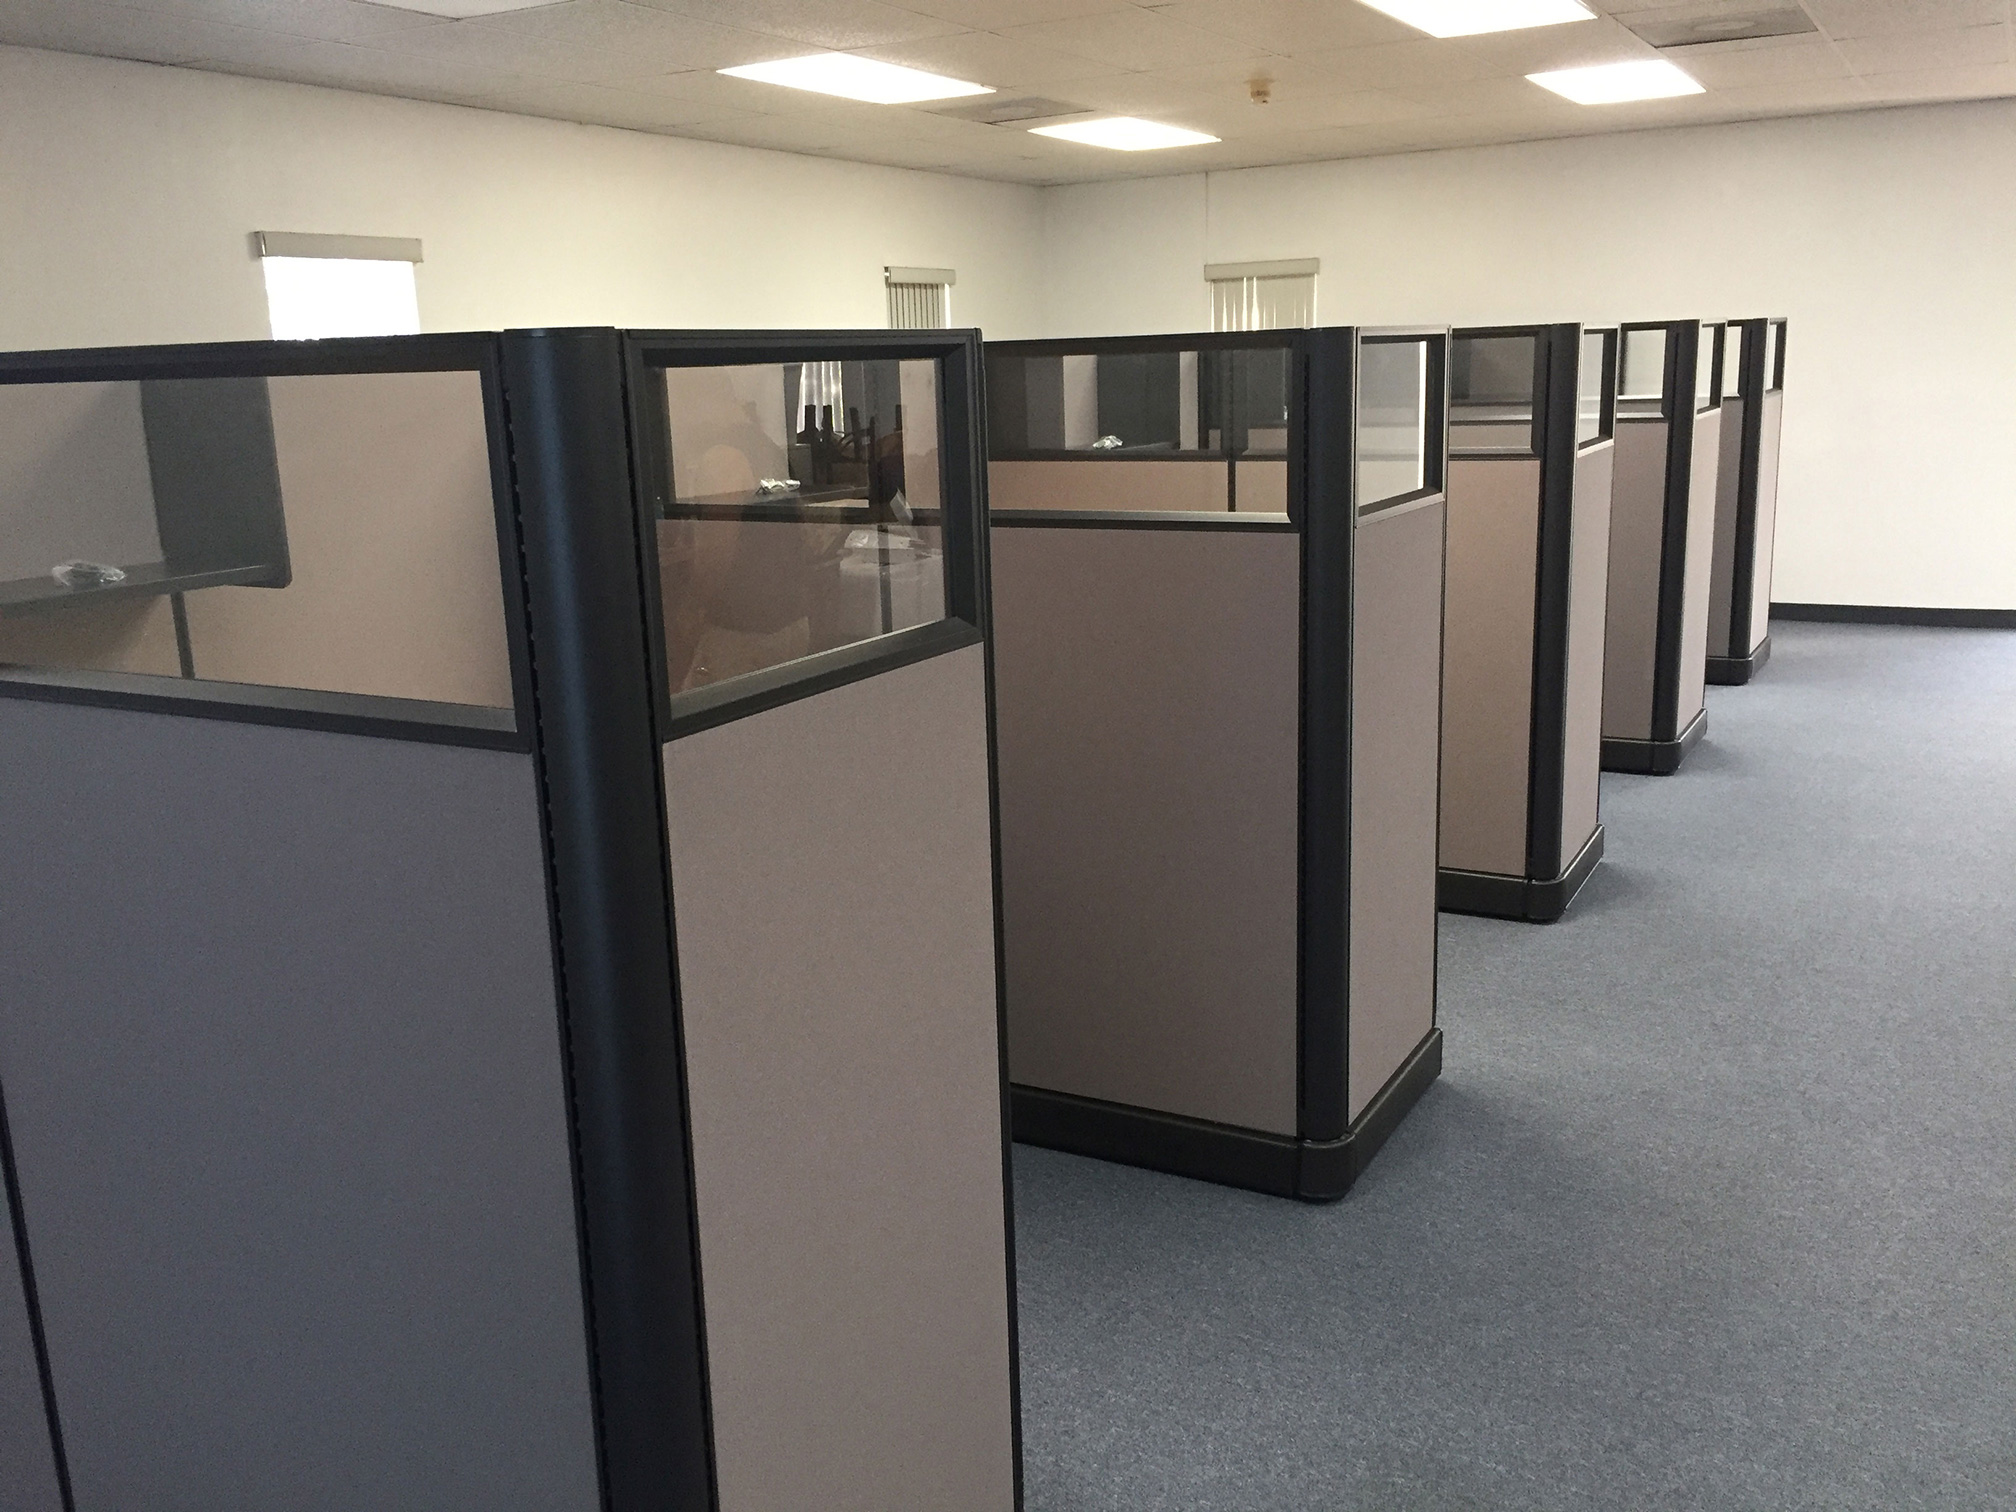 office-cubicles-for-sale-in-panama-city-florida-3.jpg